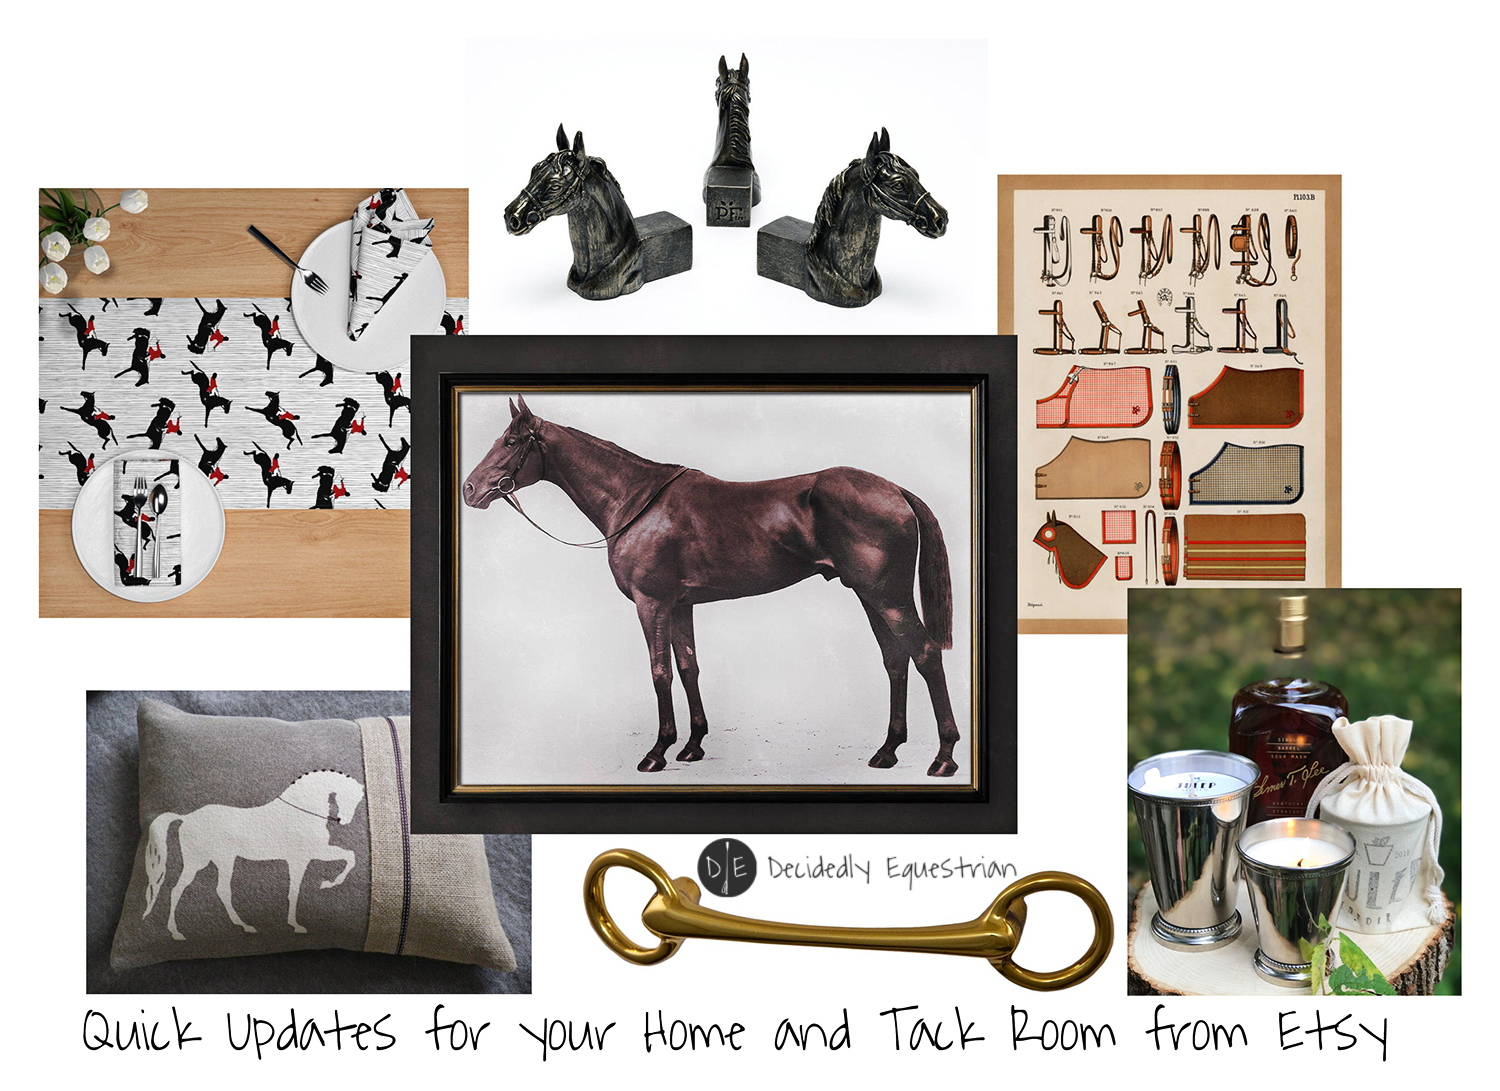 Quick Updates for your Home and Tack Room from Etsy